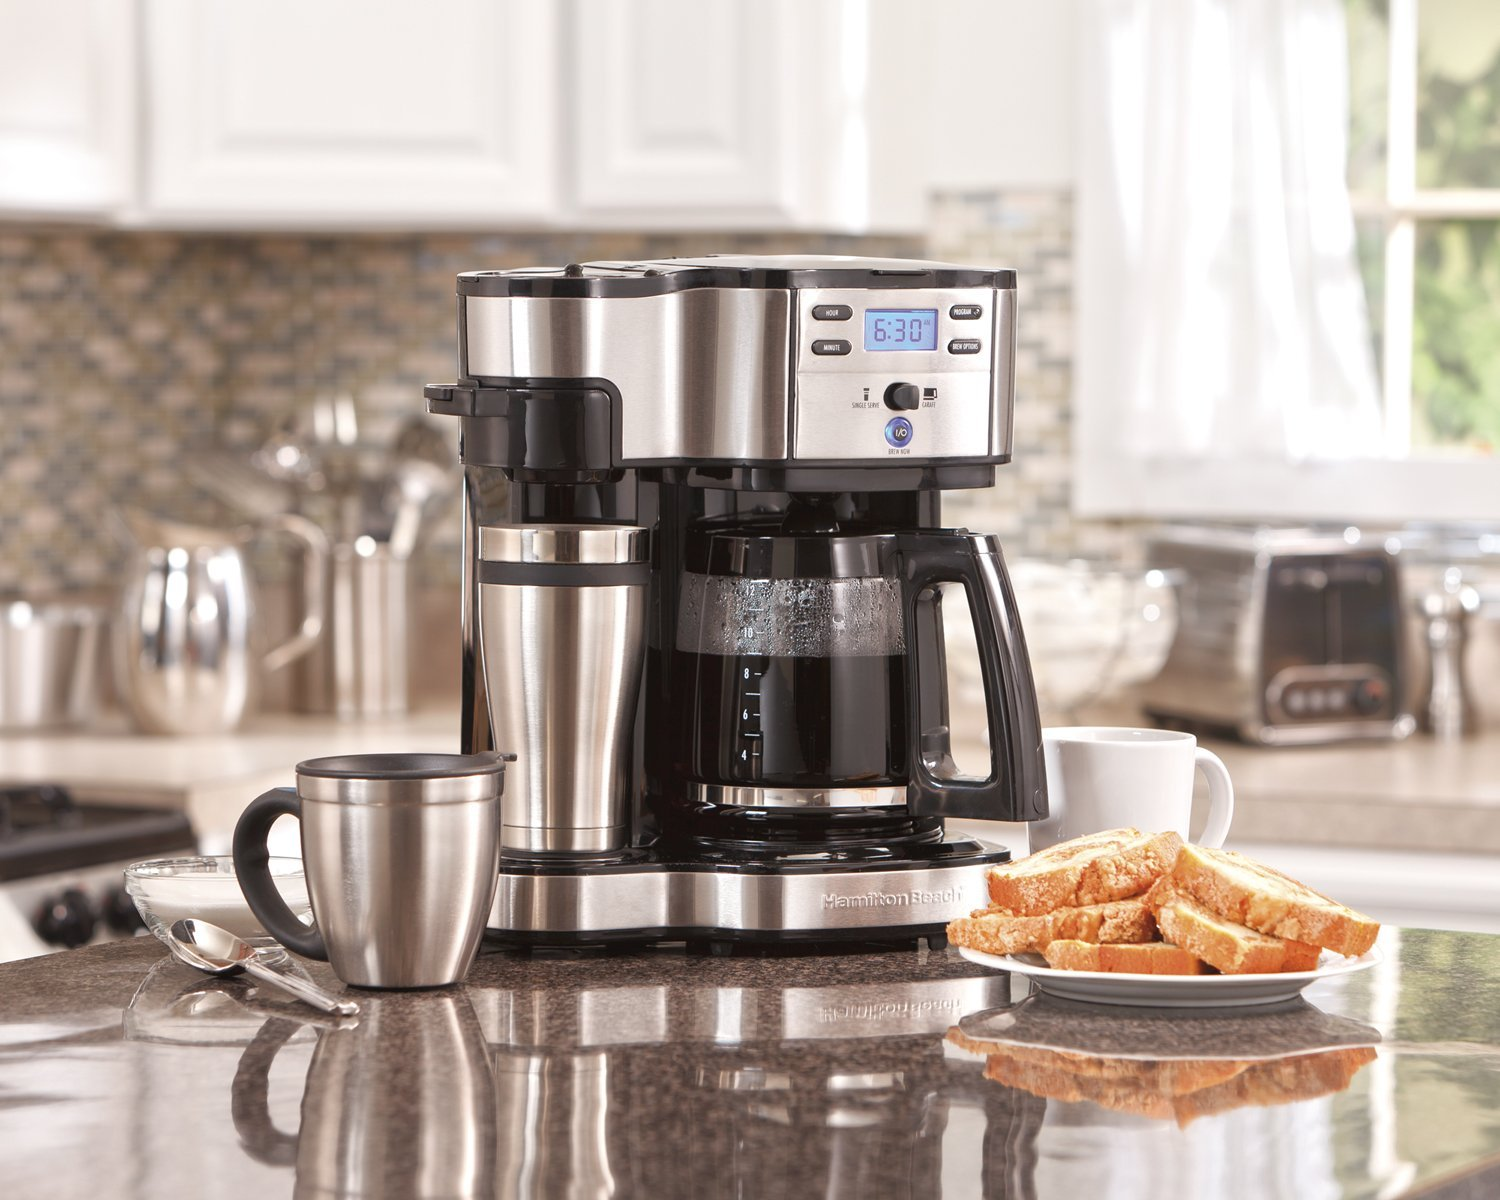 Hamilton Beach (49980A) Single Serve Coffee Maker and Coffee Pot Maker, Programmable, Black/Stainless Steel (Renewed) by Hamilton Beach (Image #4)